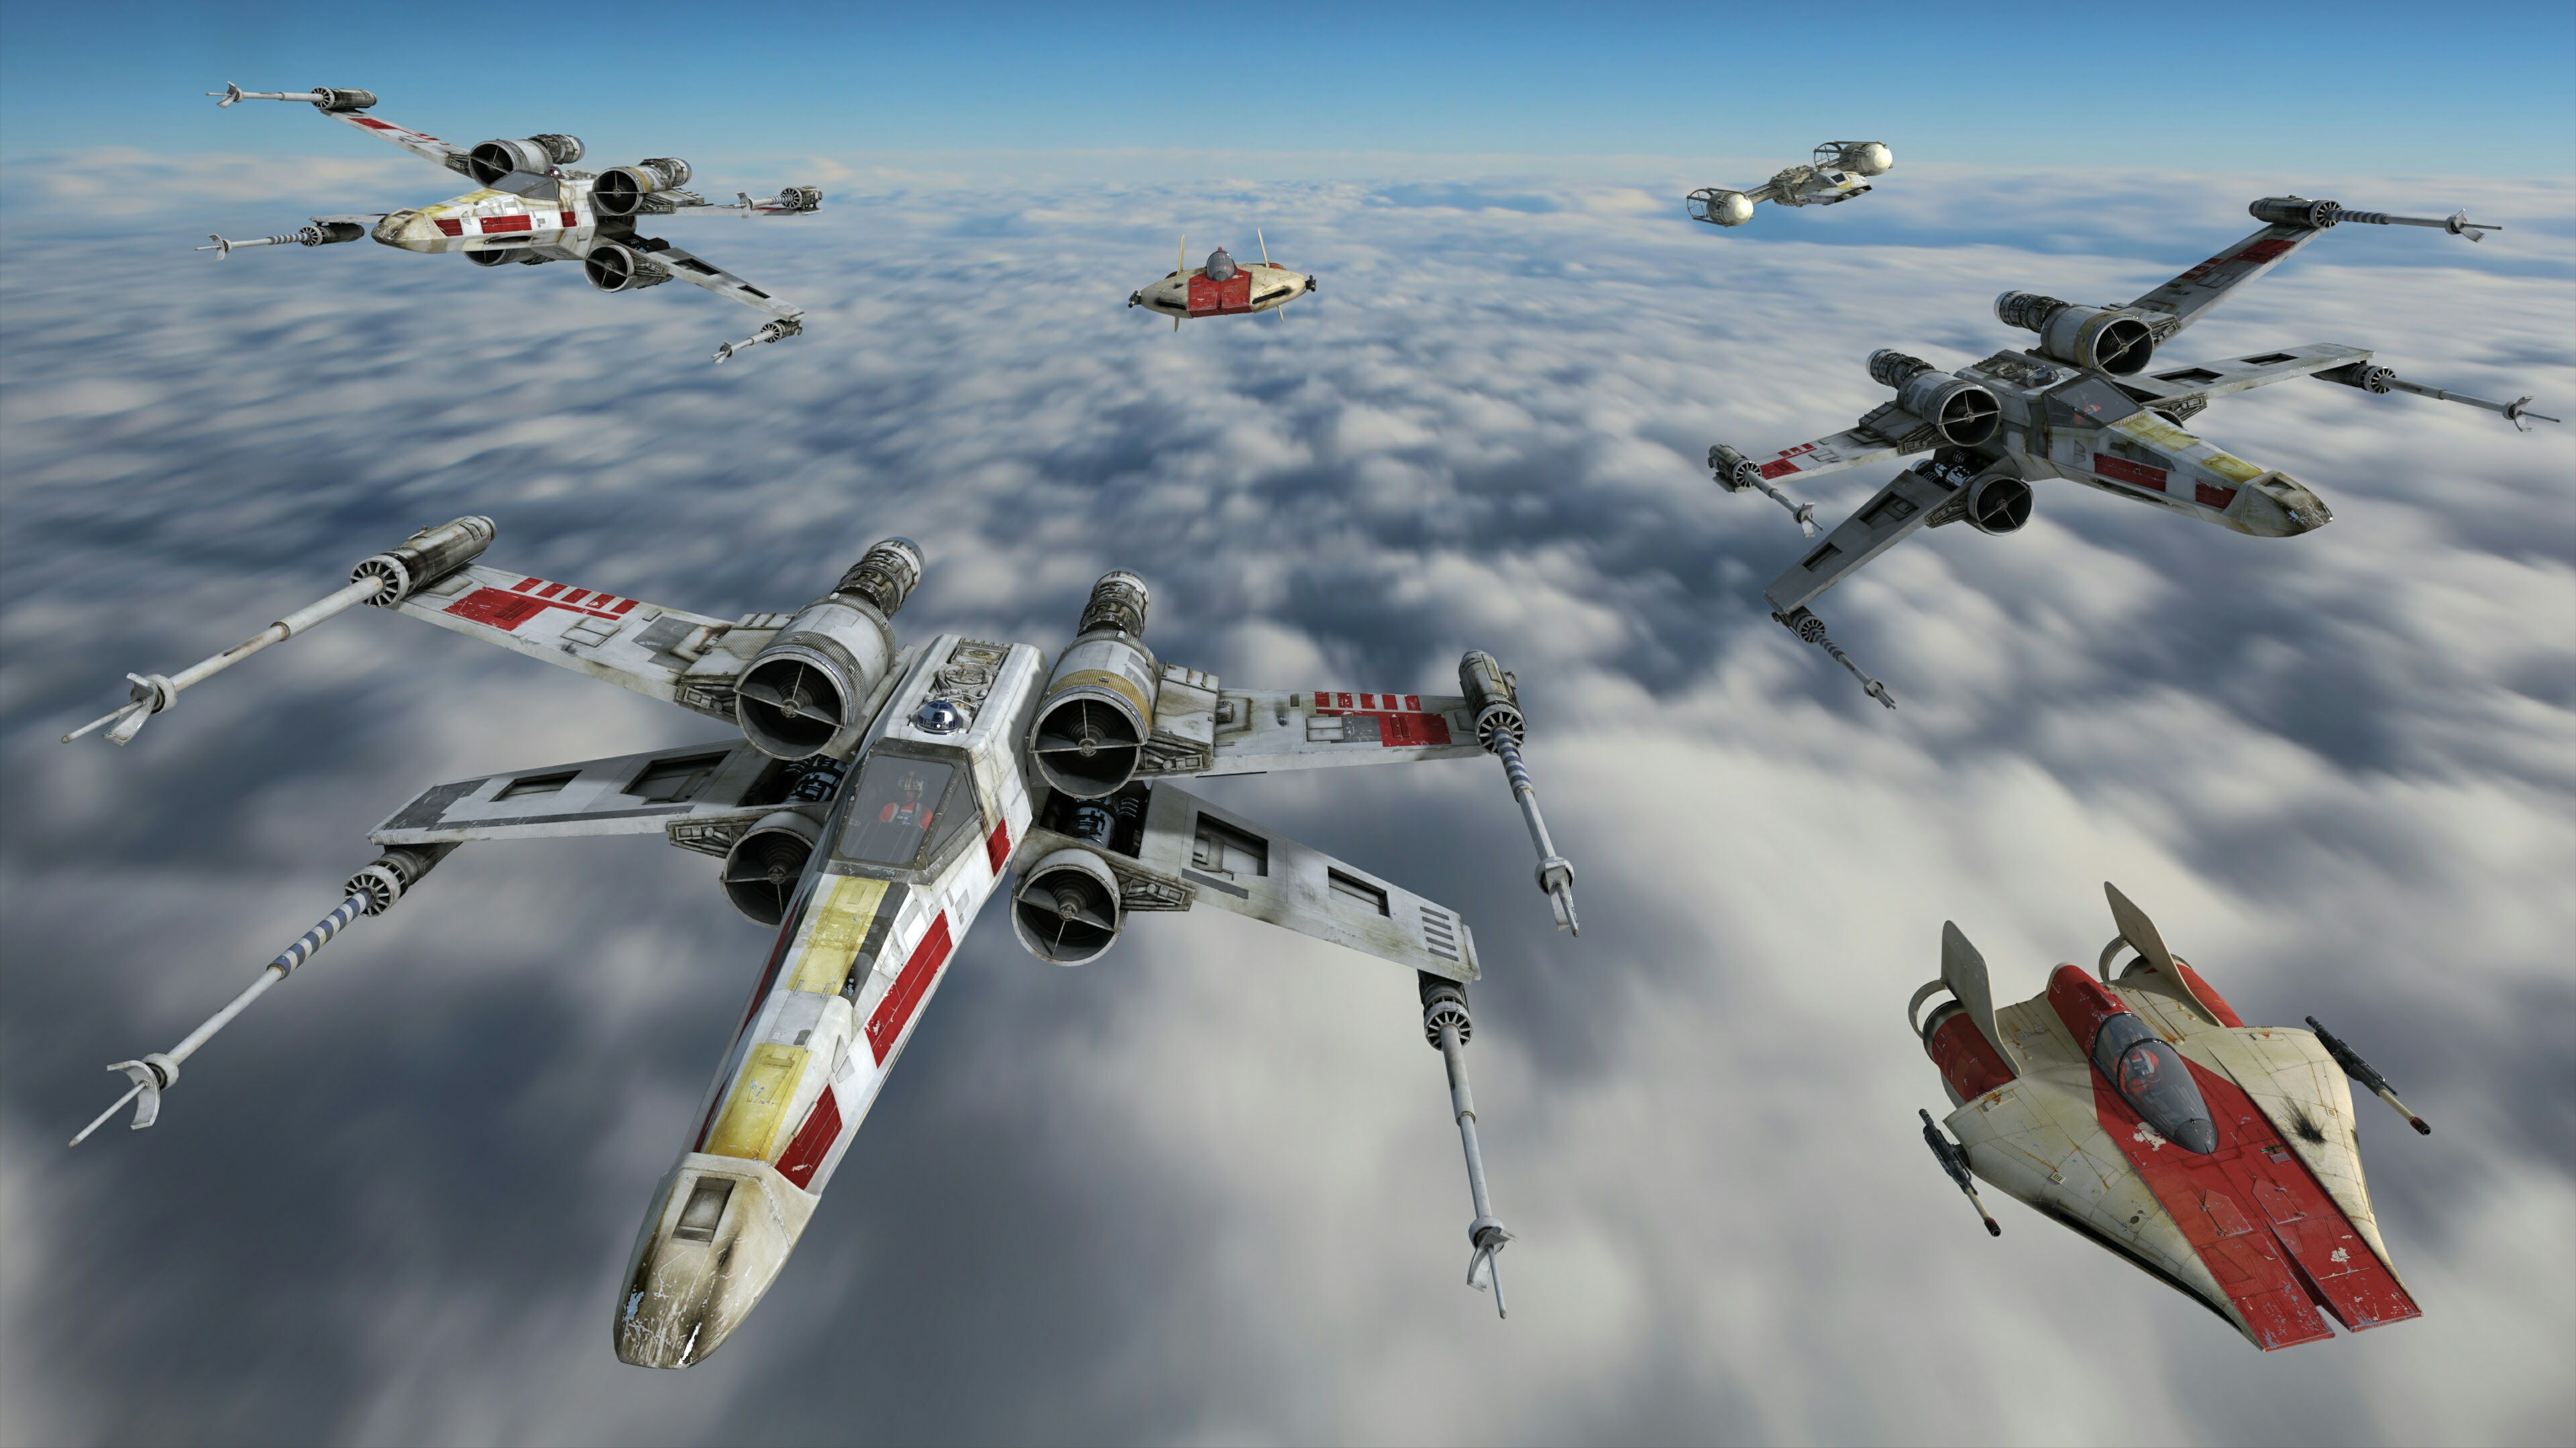 Star Wars Wallpaper X Wing Posted By John Cunningham